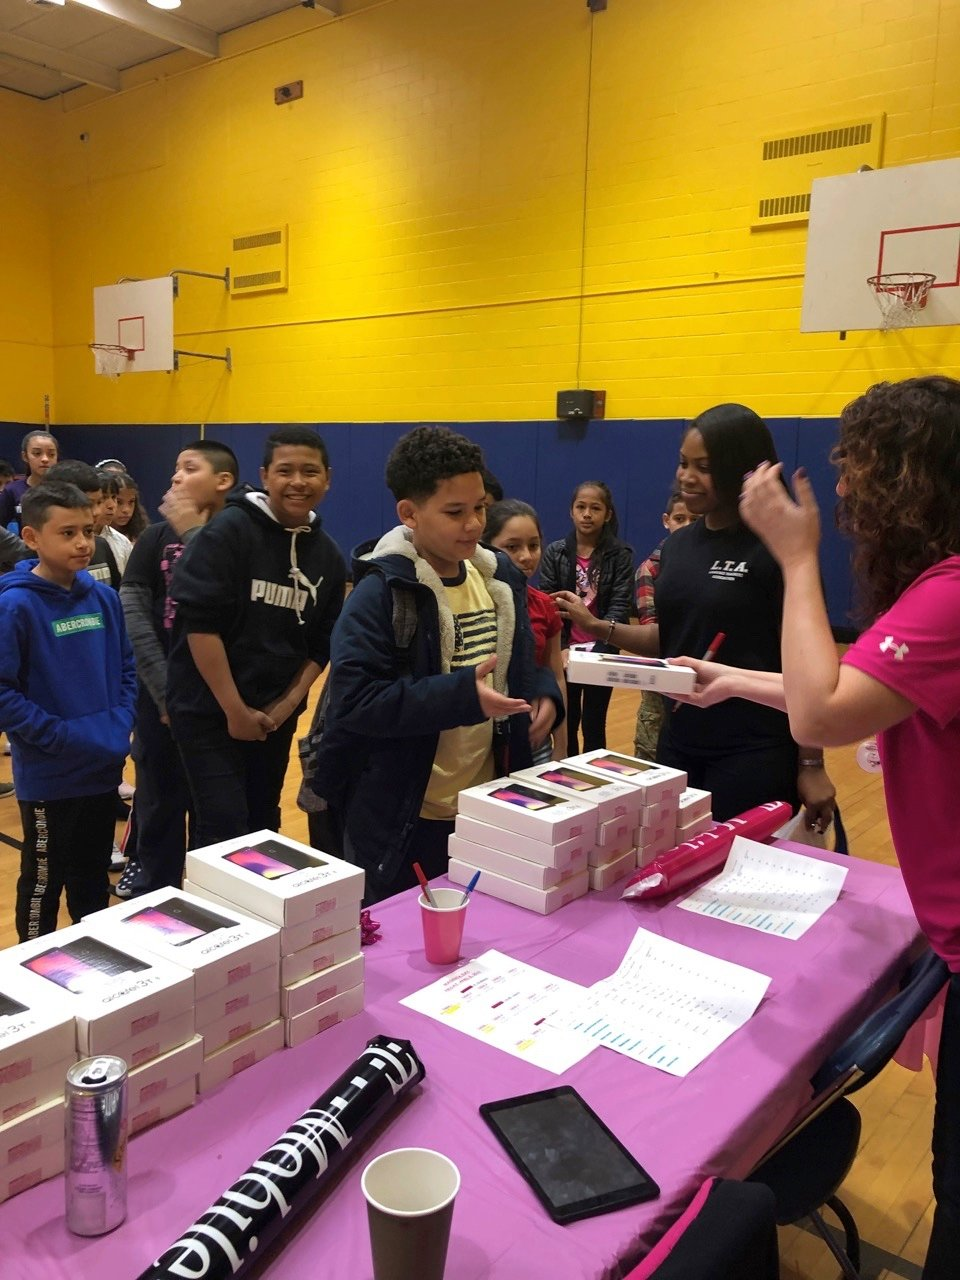 Lawrence Elementary fifth-grade student Joshua Cruz was one of 550 students to receive an Android Wi-Fi device from T-Mobile on April 5.